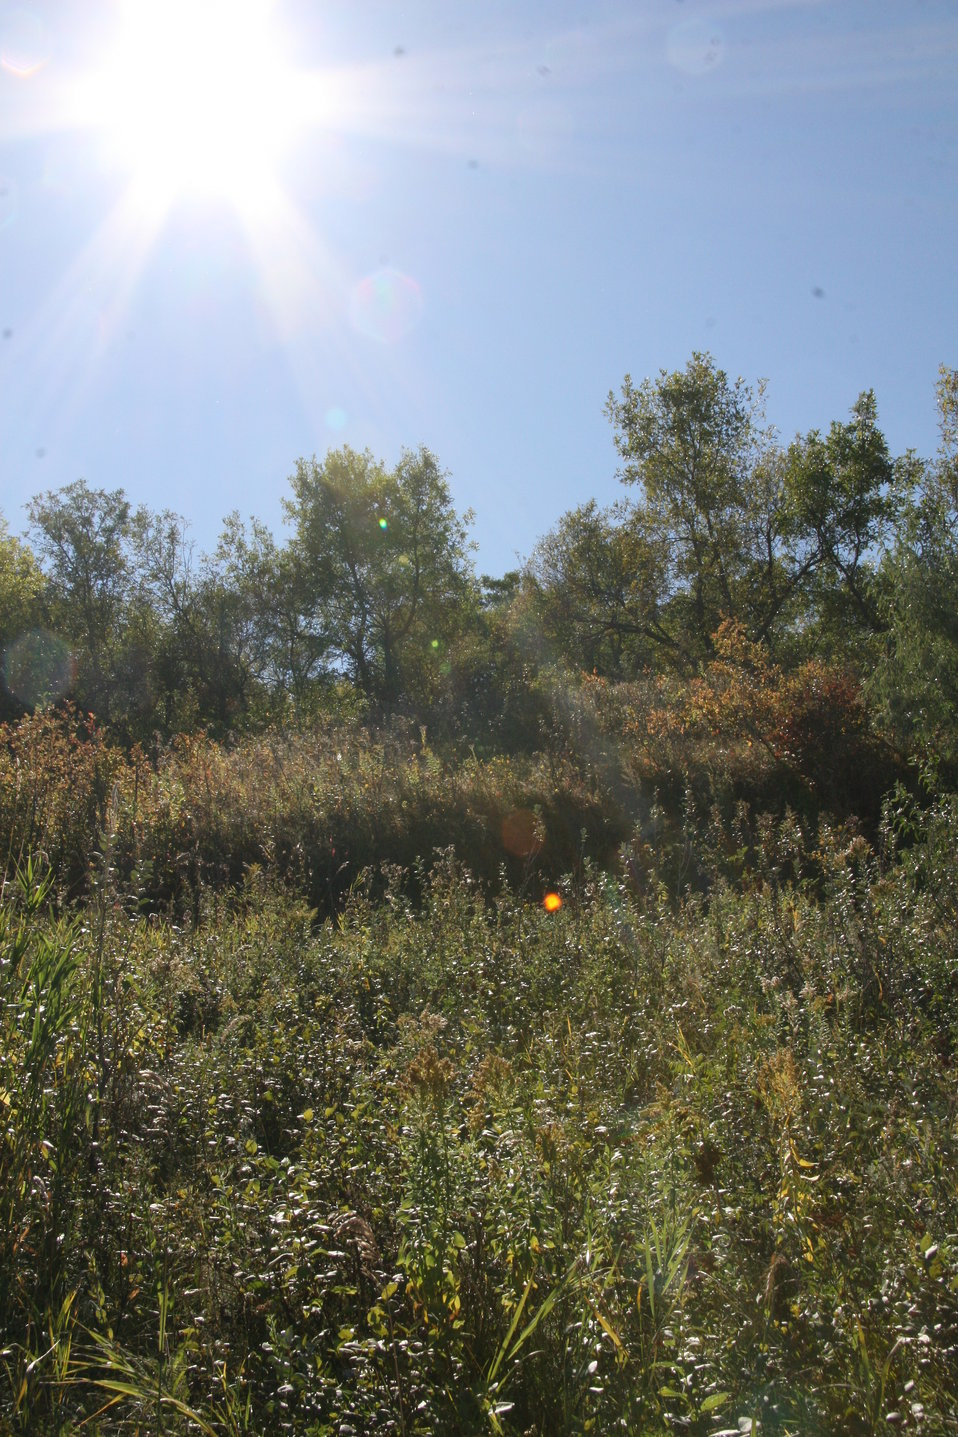 Fall Day - Fall Colors, Scenery & Wildlife on Des Lacs Refuge